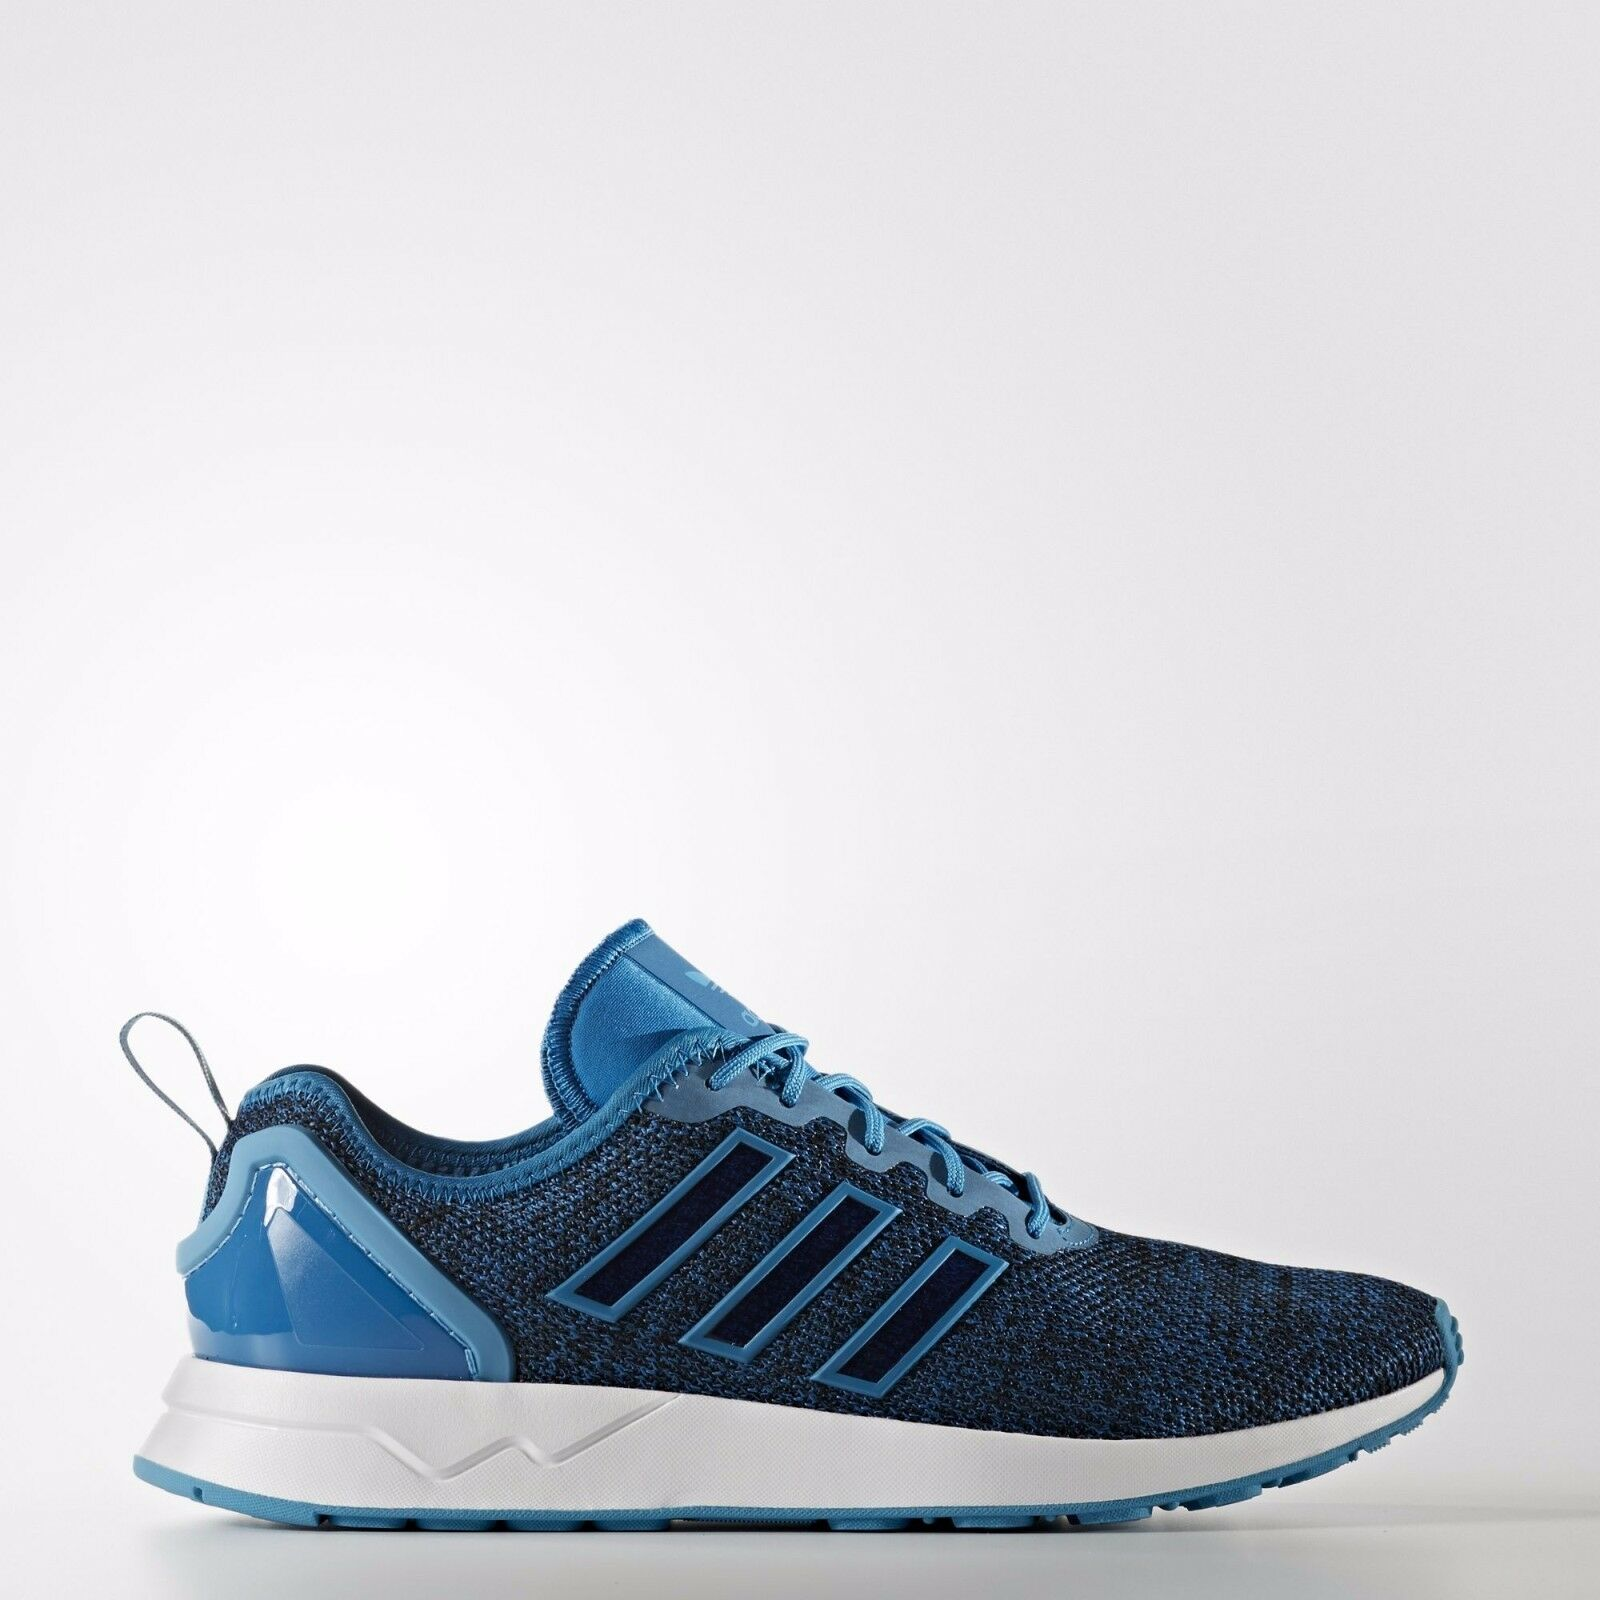 zapatos adidas zx flux Adv azul Craft s76387 azul zapatillas Mens Sz. 44.5 NEW